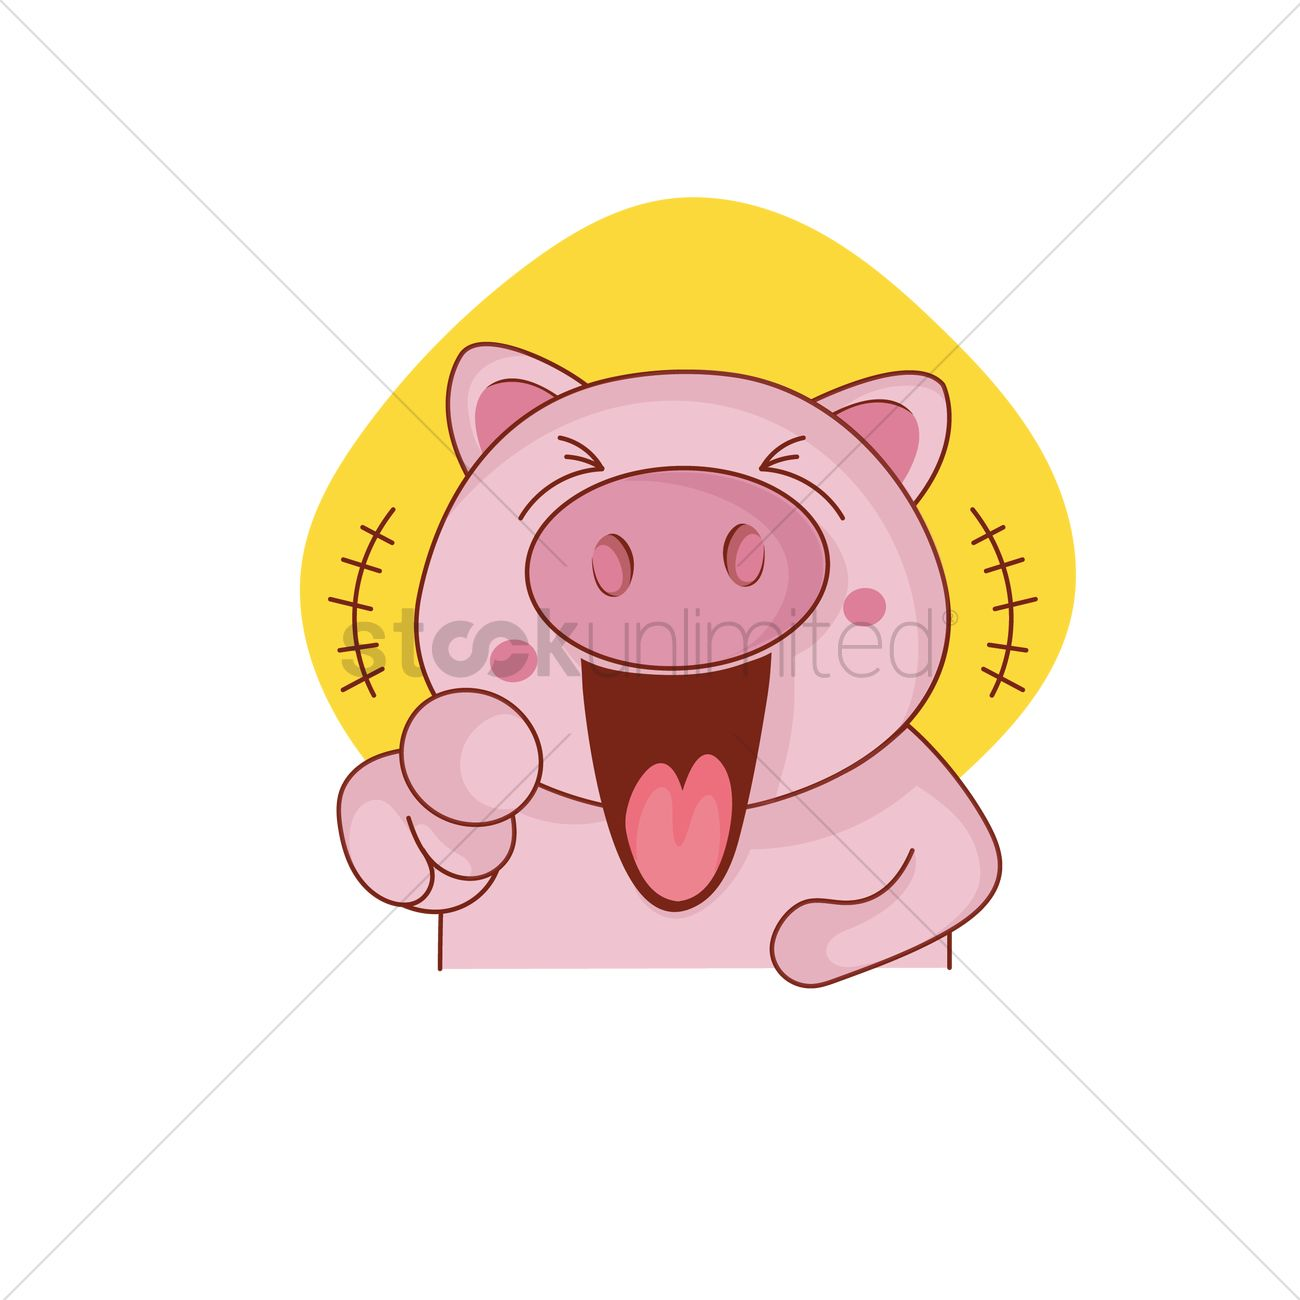 Pig character laughing and pointing Vector Image.